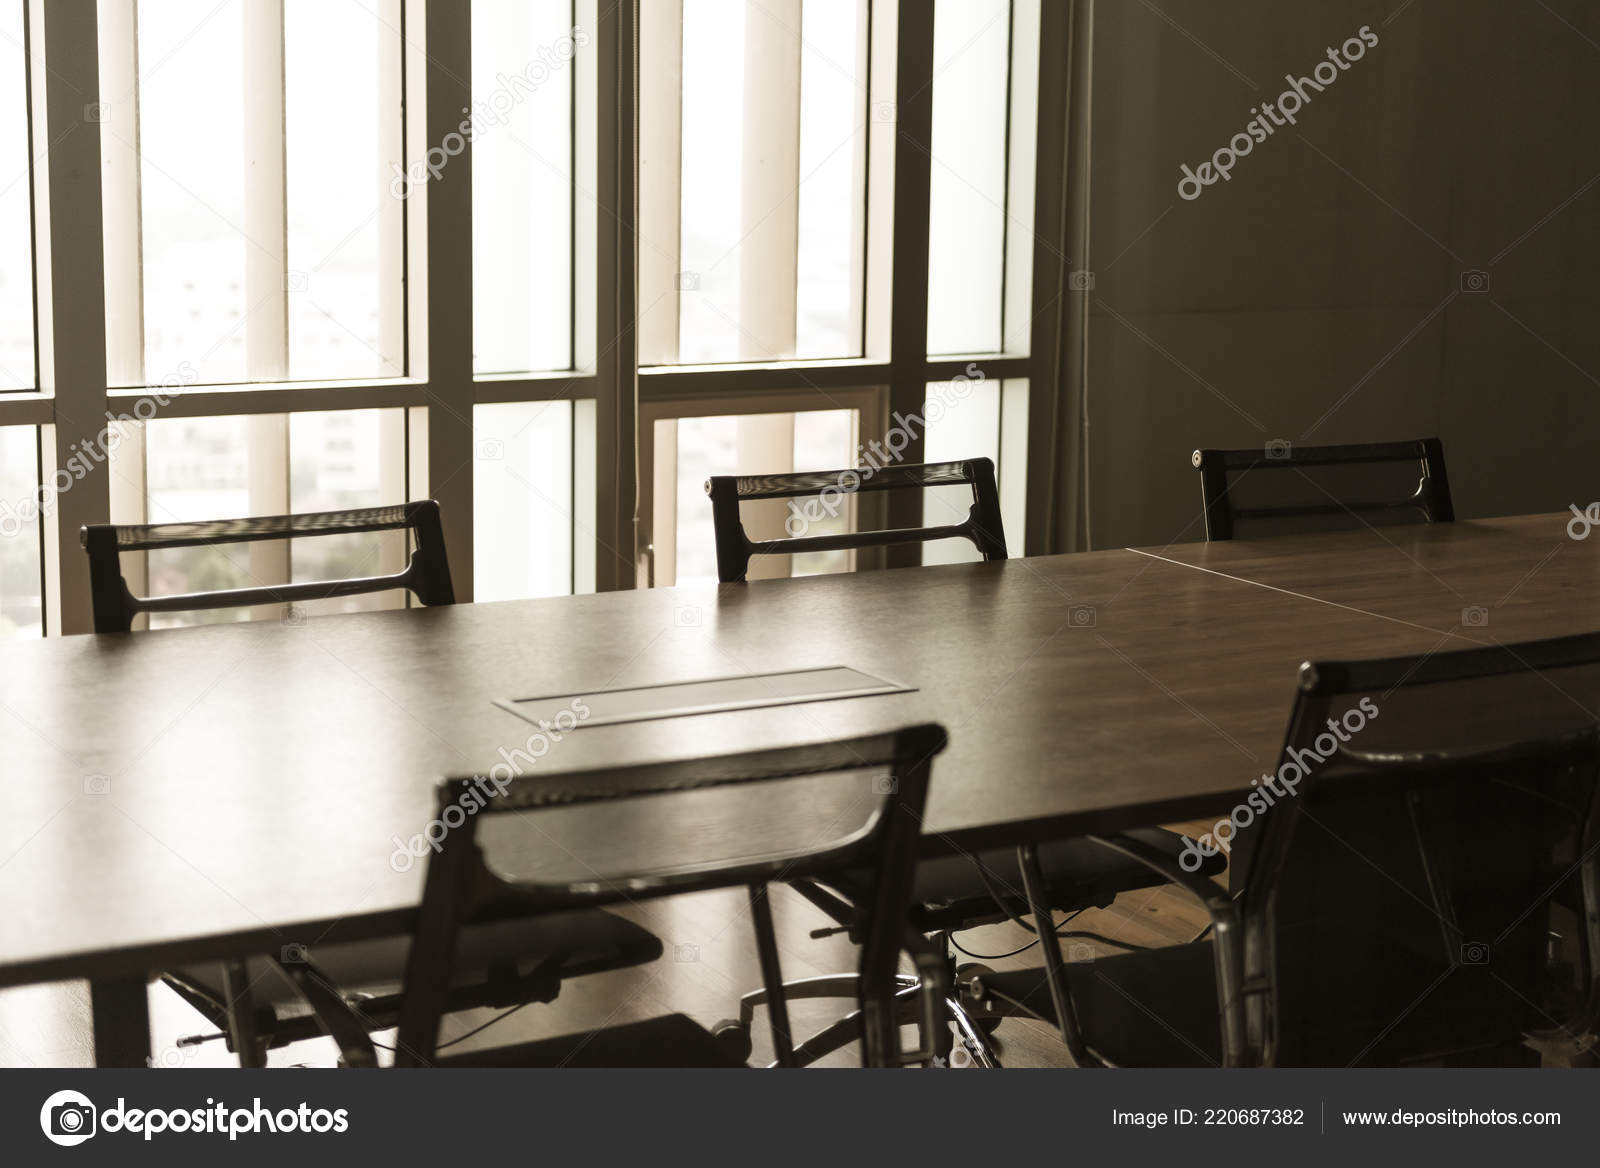 Table and chairs in office meeting room. empty conference room. 42